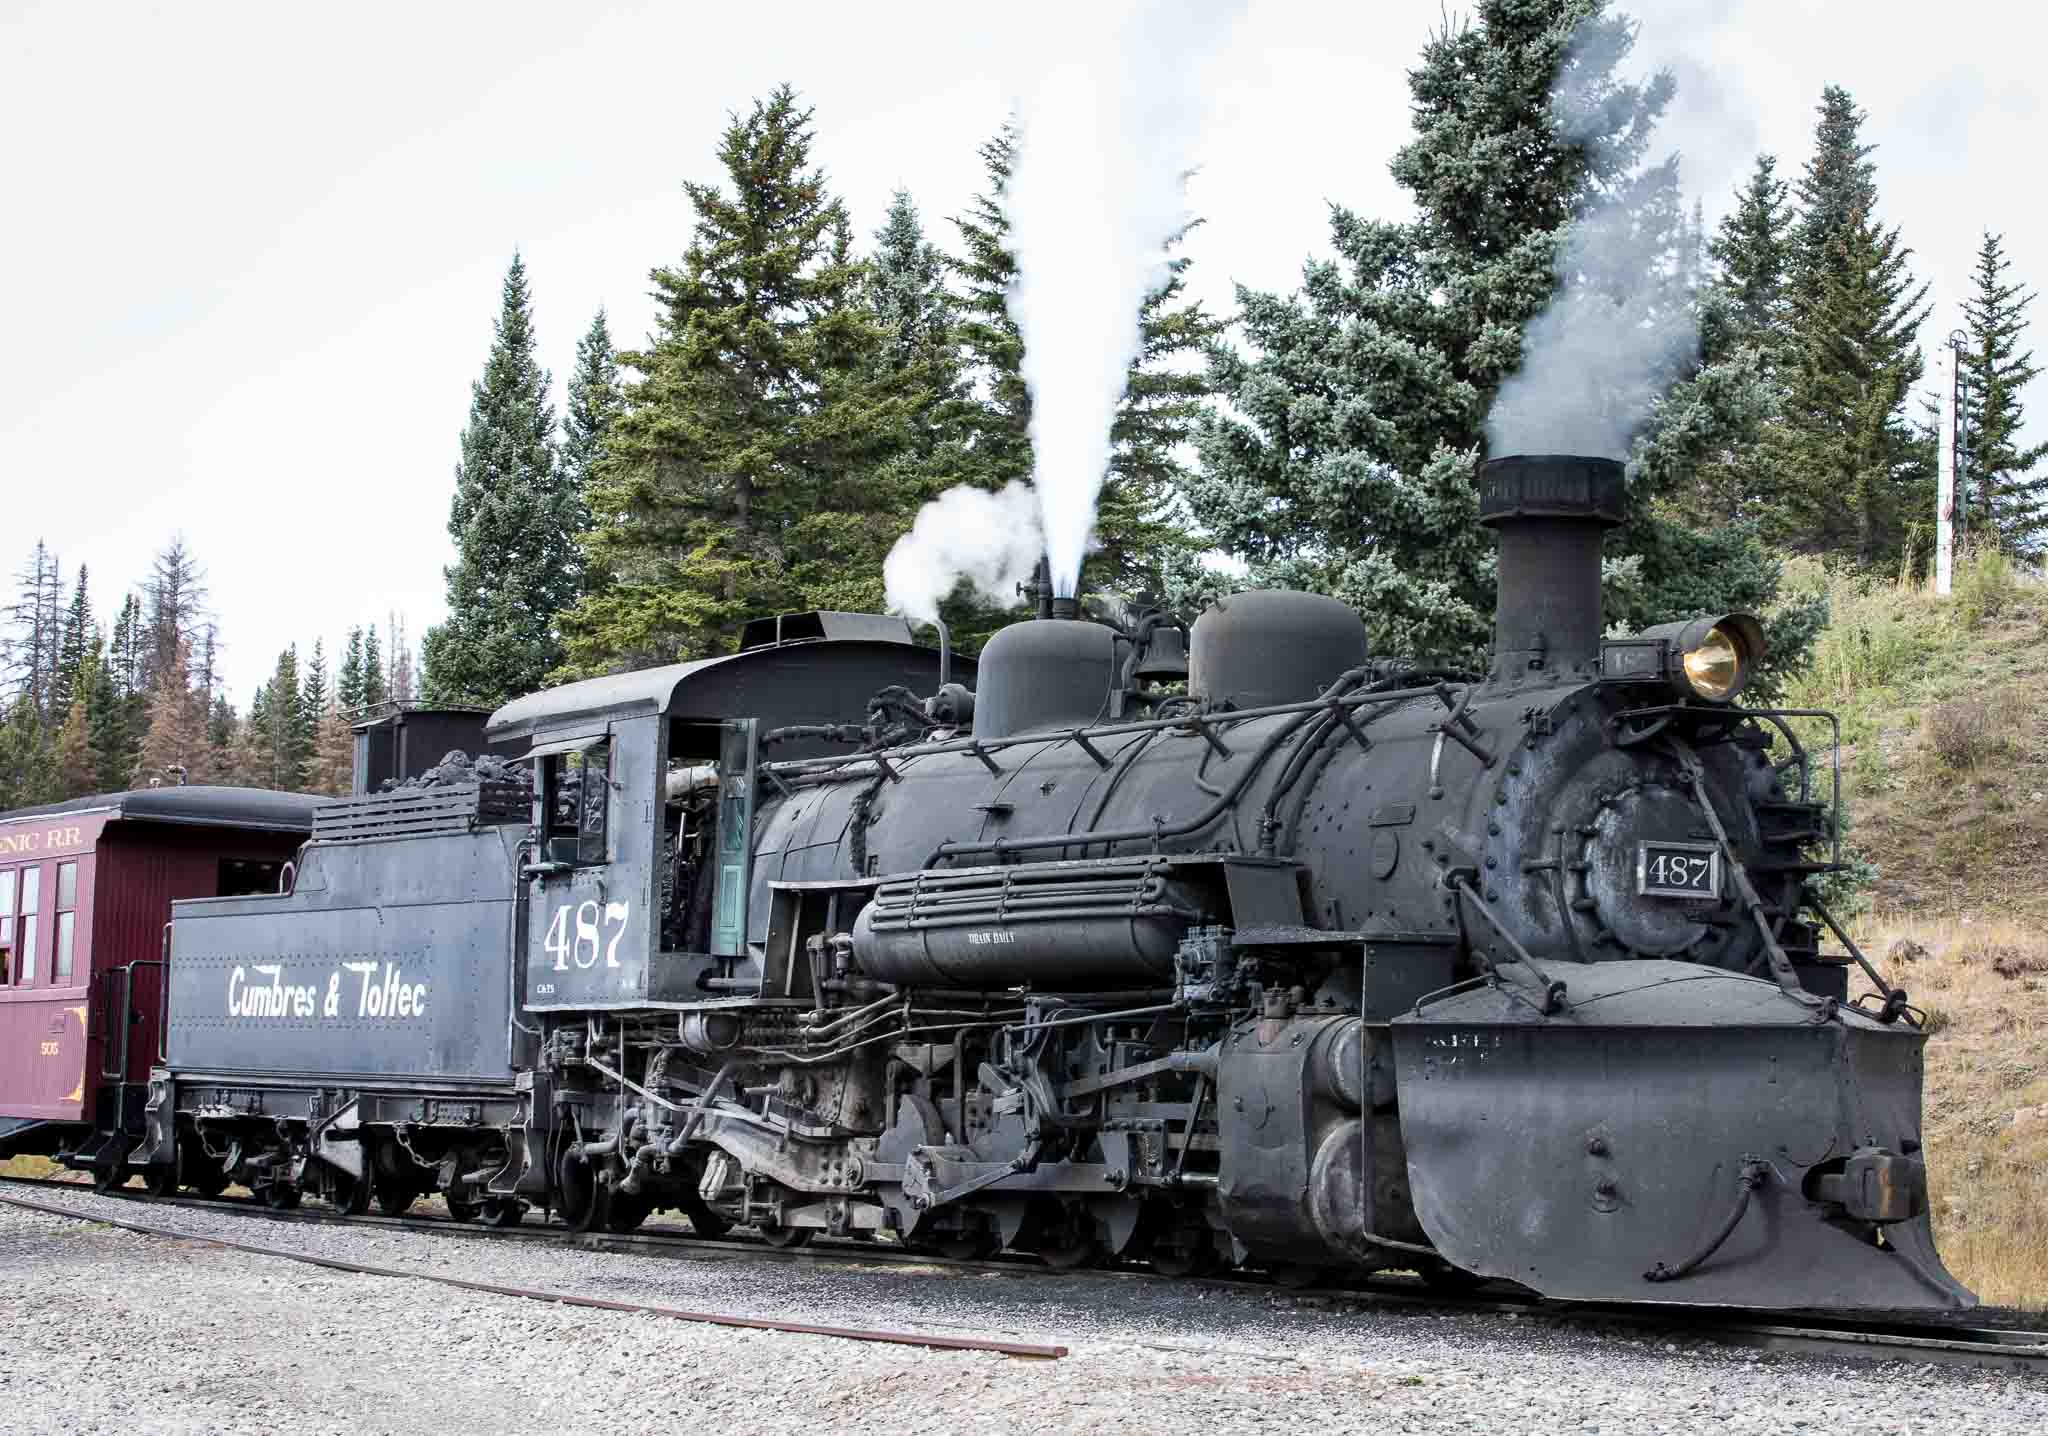 Cumbres & Toltec engine letting off steam at top of Cumbres Pass, October 8, 2014